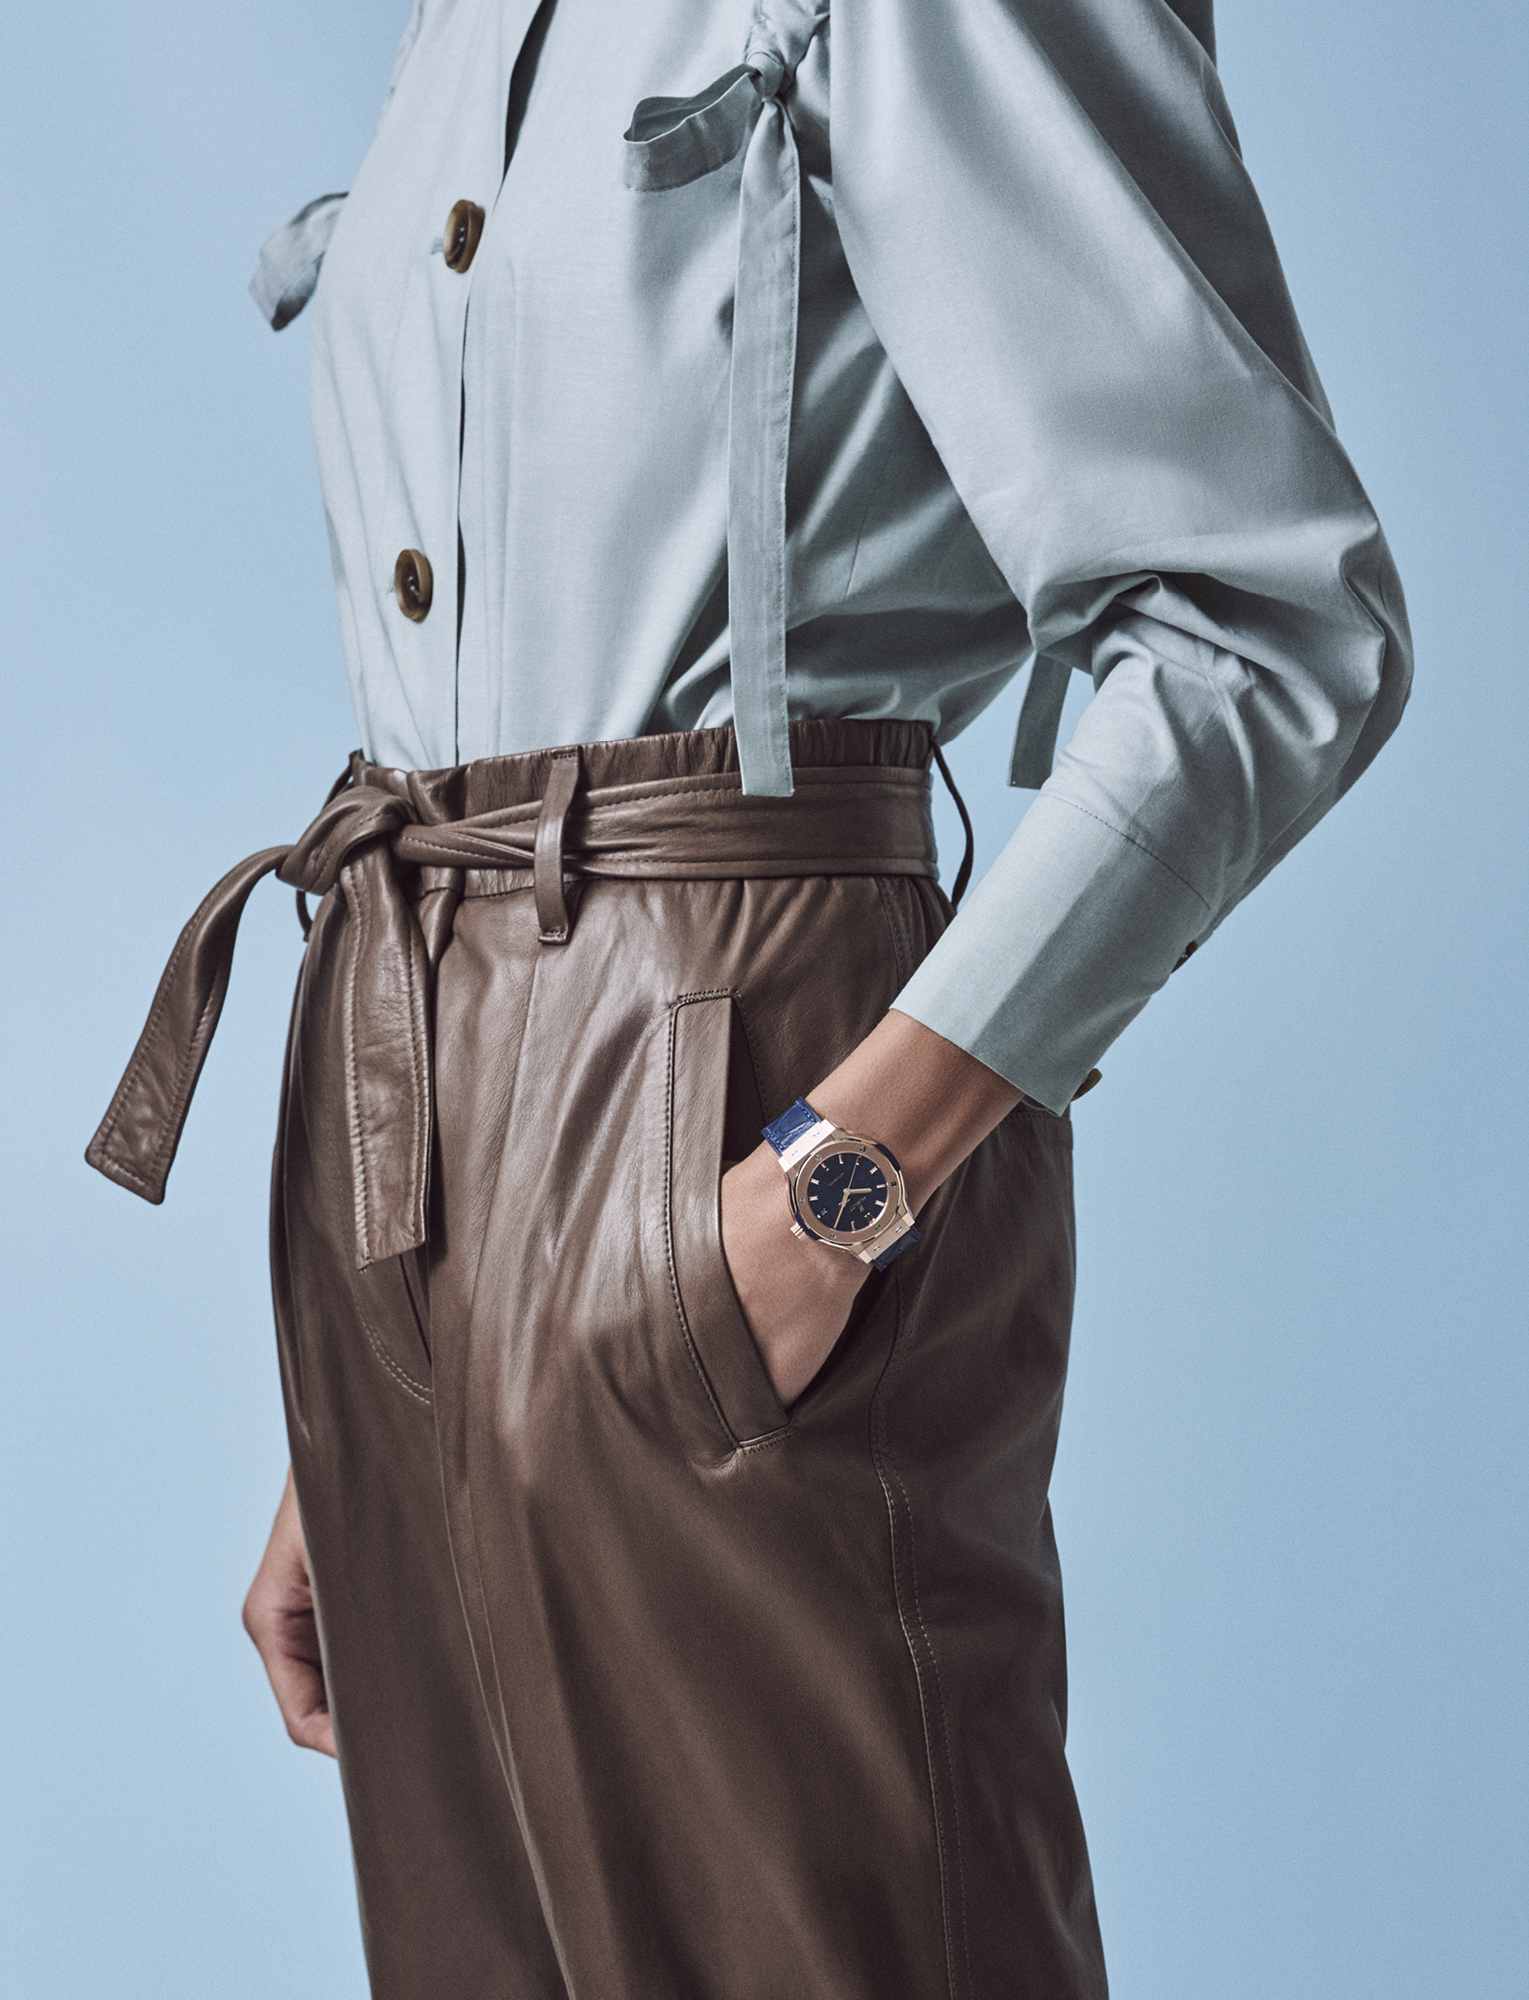 Cotton jacket, £295, REJINA PYO AT HARVEY NICHOLS; leather trousers, £2,930, BRUNELLO CUCINELLI; Classic Fusion King Gold Blue watch, 38mm with blue alligator strap, £14,700, HUBLOT